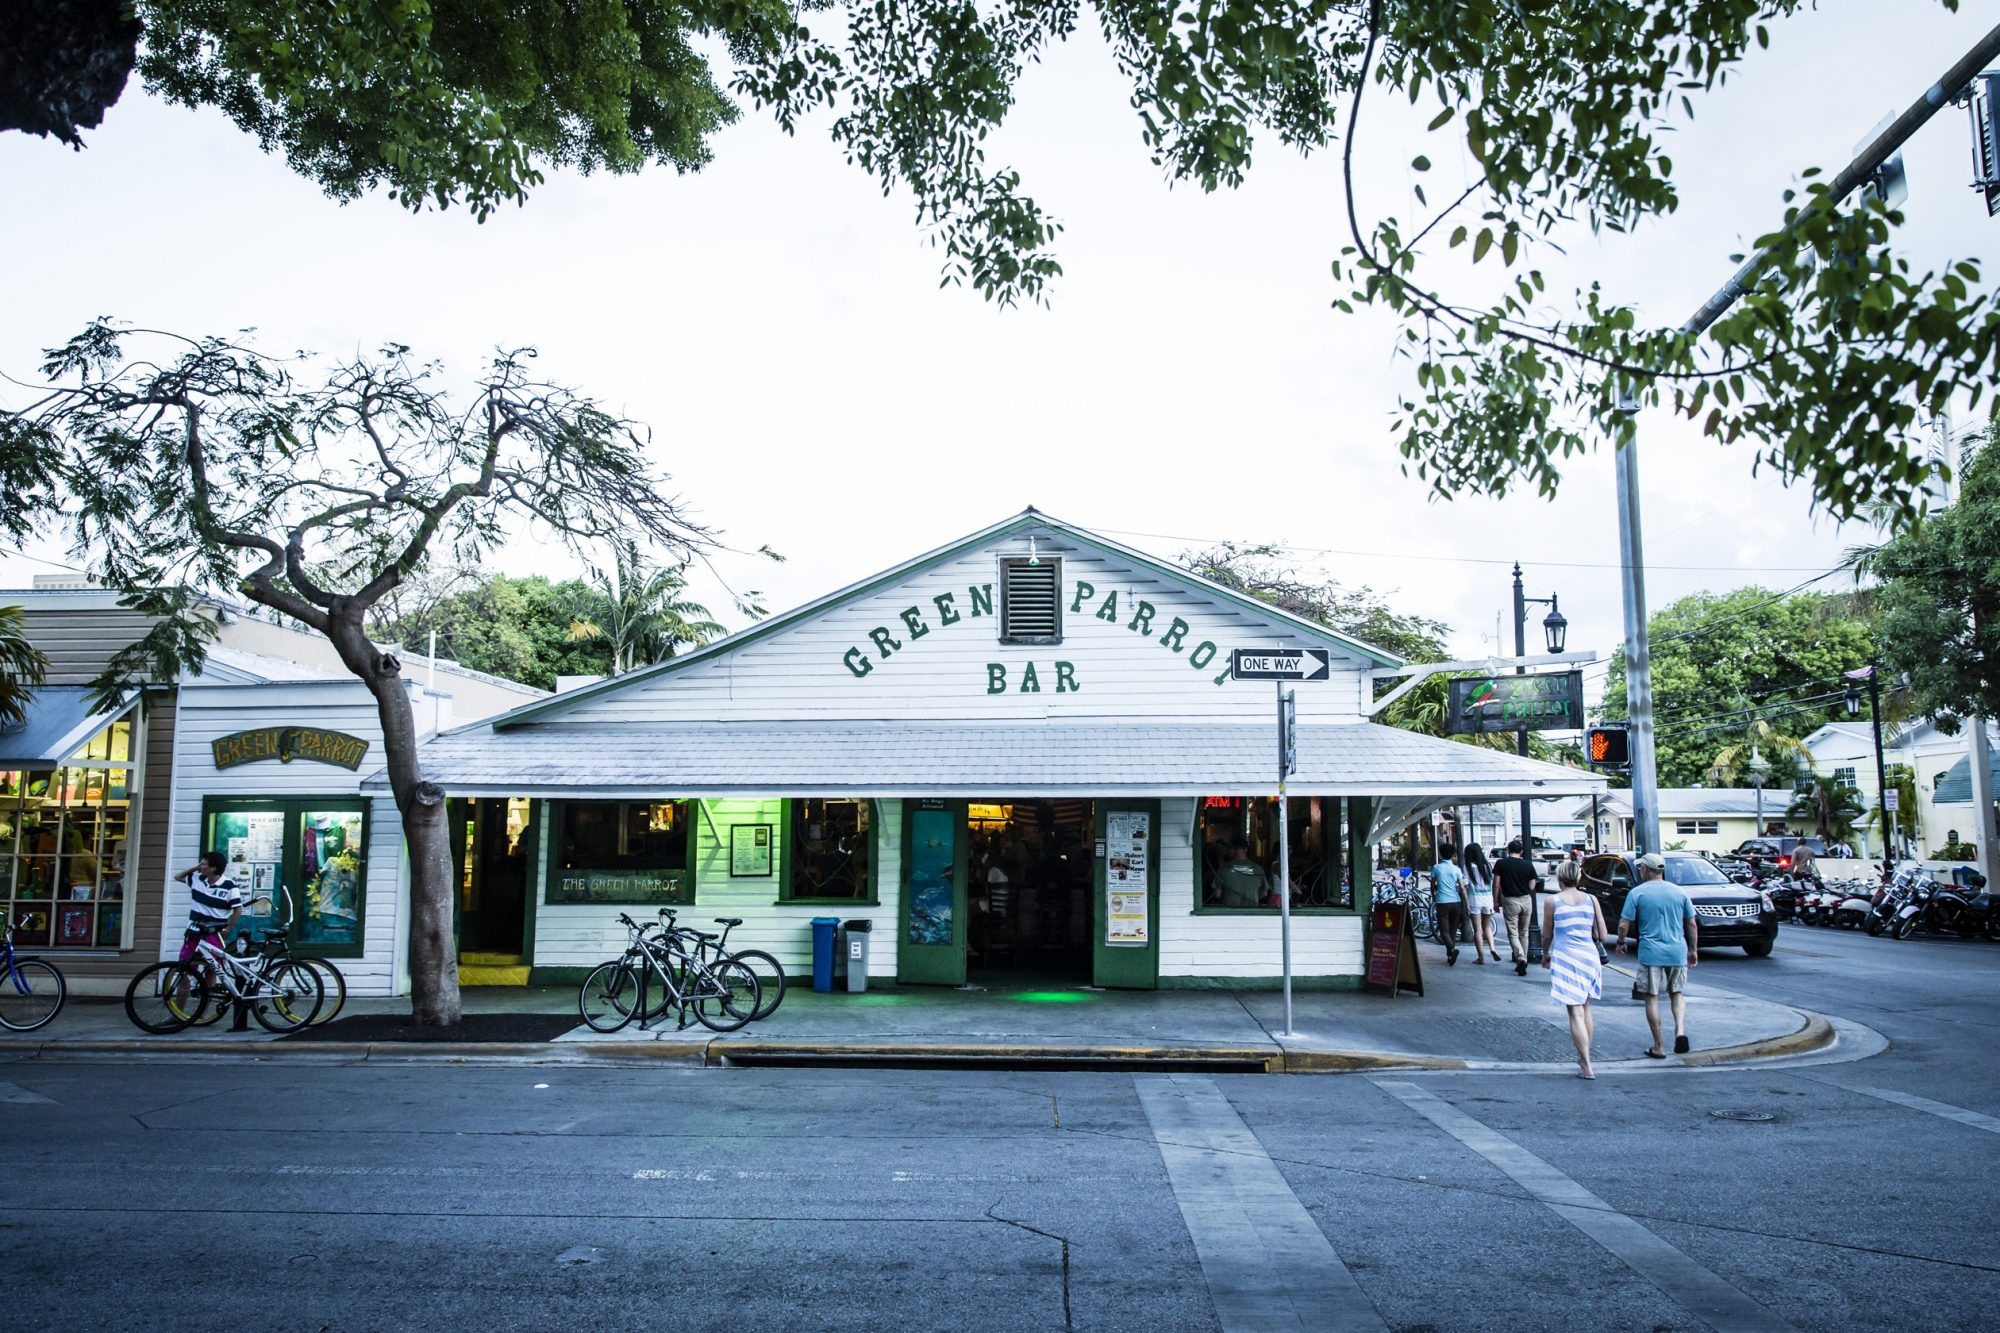 Dive Bar: Green Parrot Bar (Key West, Florida)